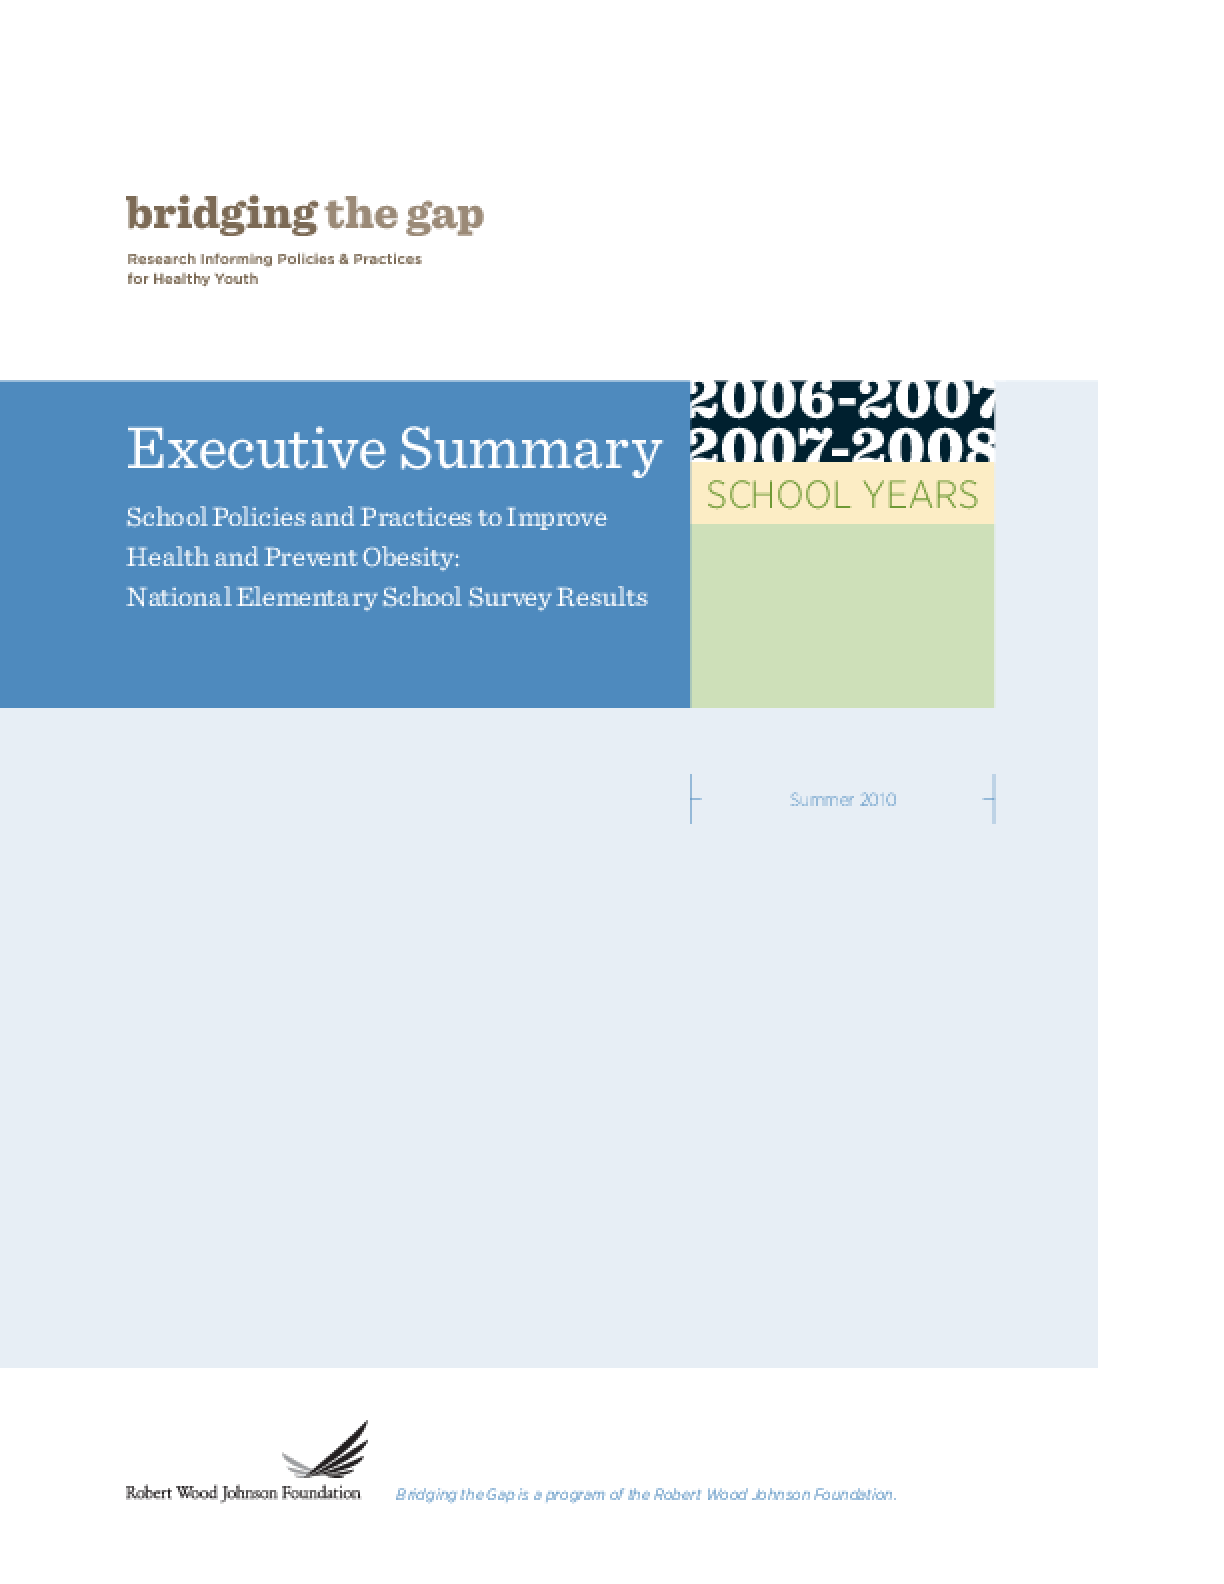 School Policies and Practices to Improve Health and Prevent Obesity: National Elementary School Survey Results: School Years 2006-07 and 2007-08 (Executive Summary)